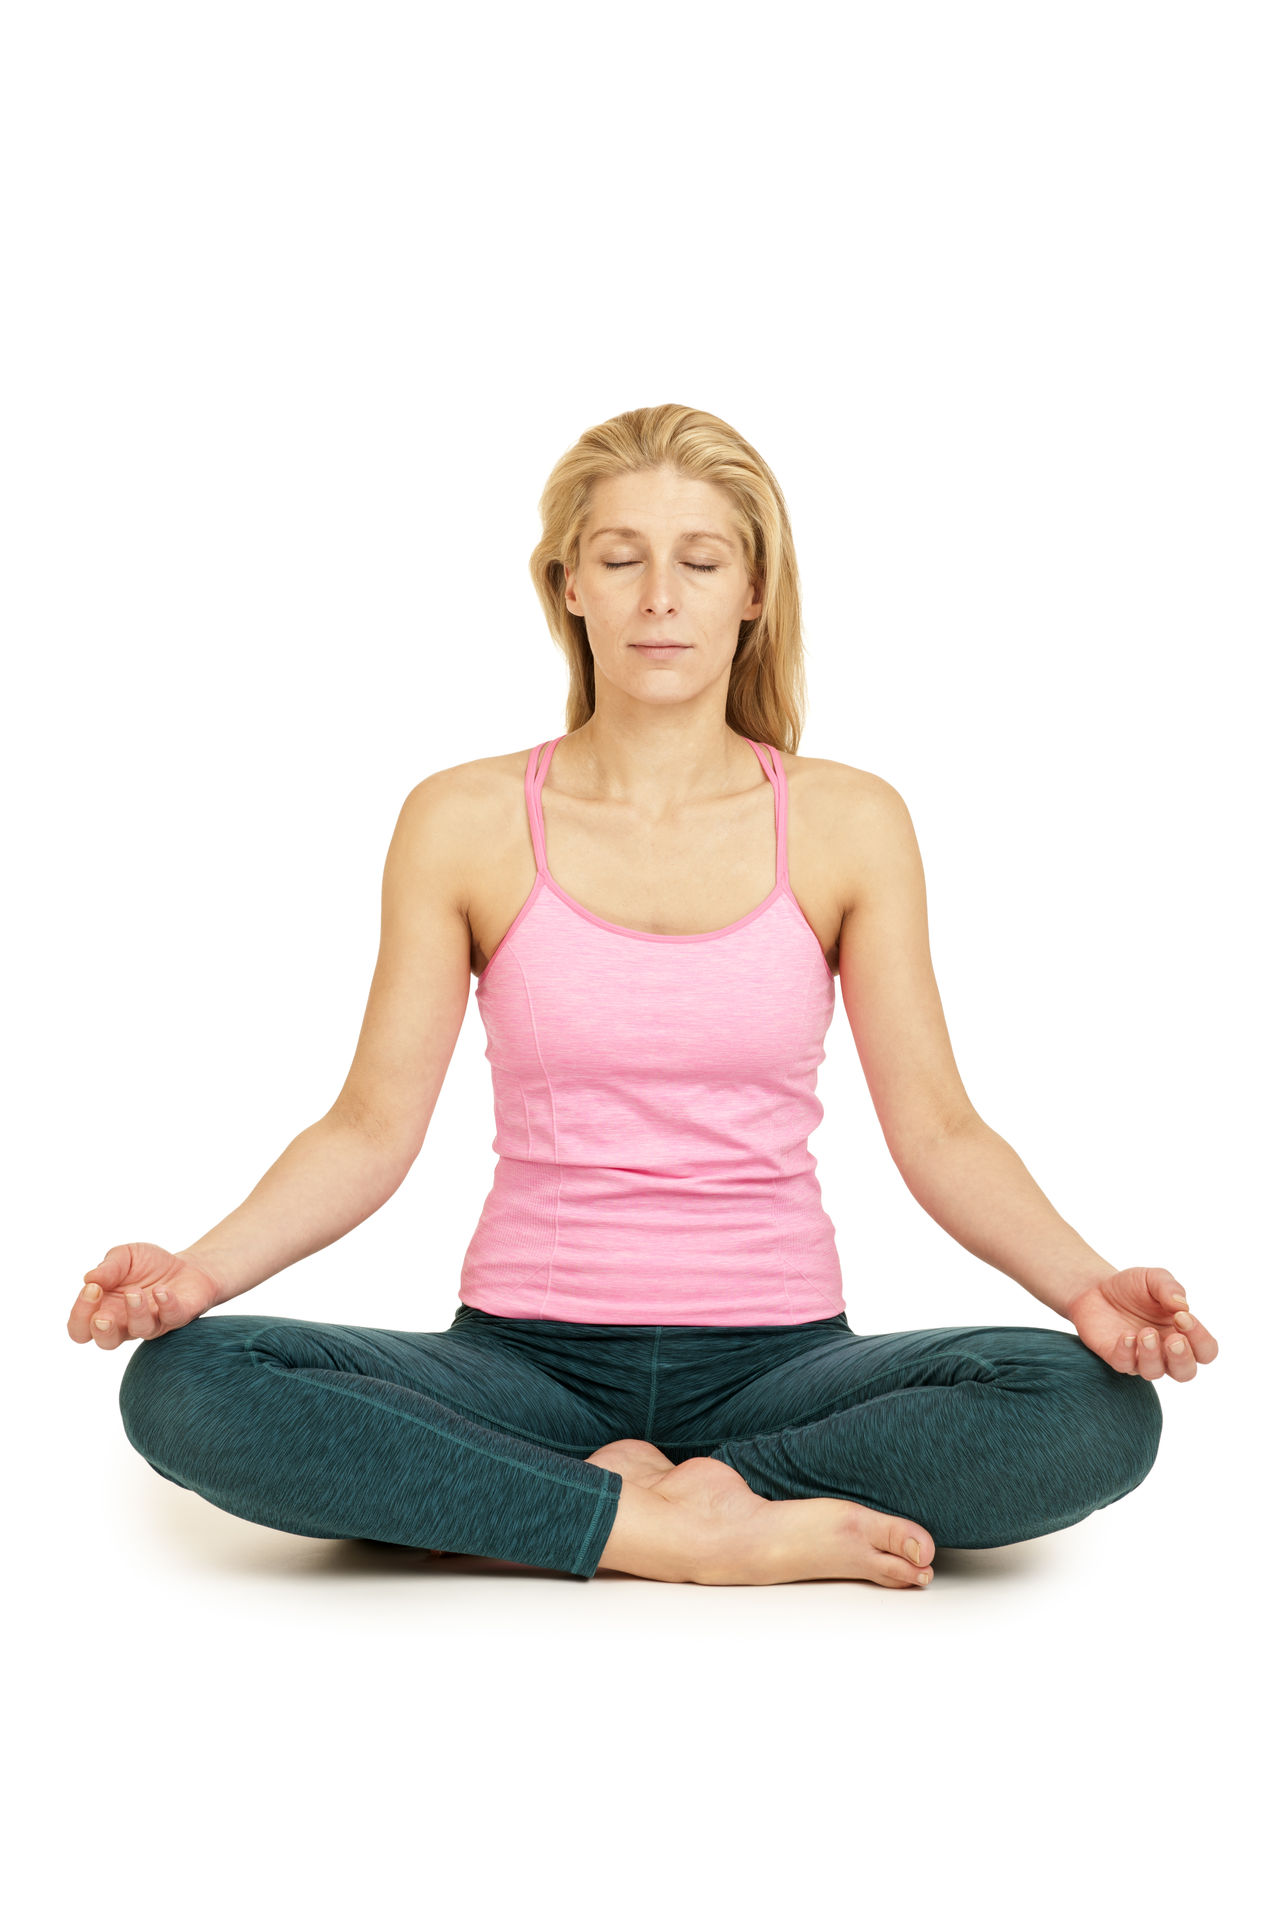 Frontal full-body view of a young woman in front of white background in the Lotus position (Padmasana). Adult Beautiful Woman Beauty Blond Hair Body Care Cross-legged Eyes Closed  Females Full Length Healthy Lifestyle Leisure Activity Lifestyles Lotus Position Meditating Padmasana Relaxation Religion Sitting Smiling Studio Shot Wellbeing Women Yoga Young Adult Zen-like